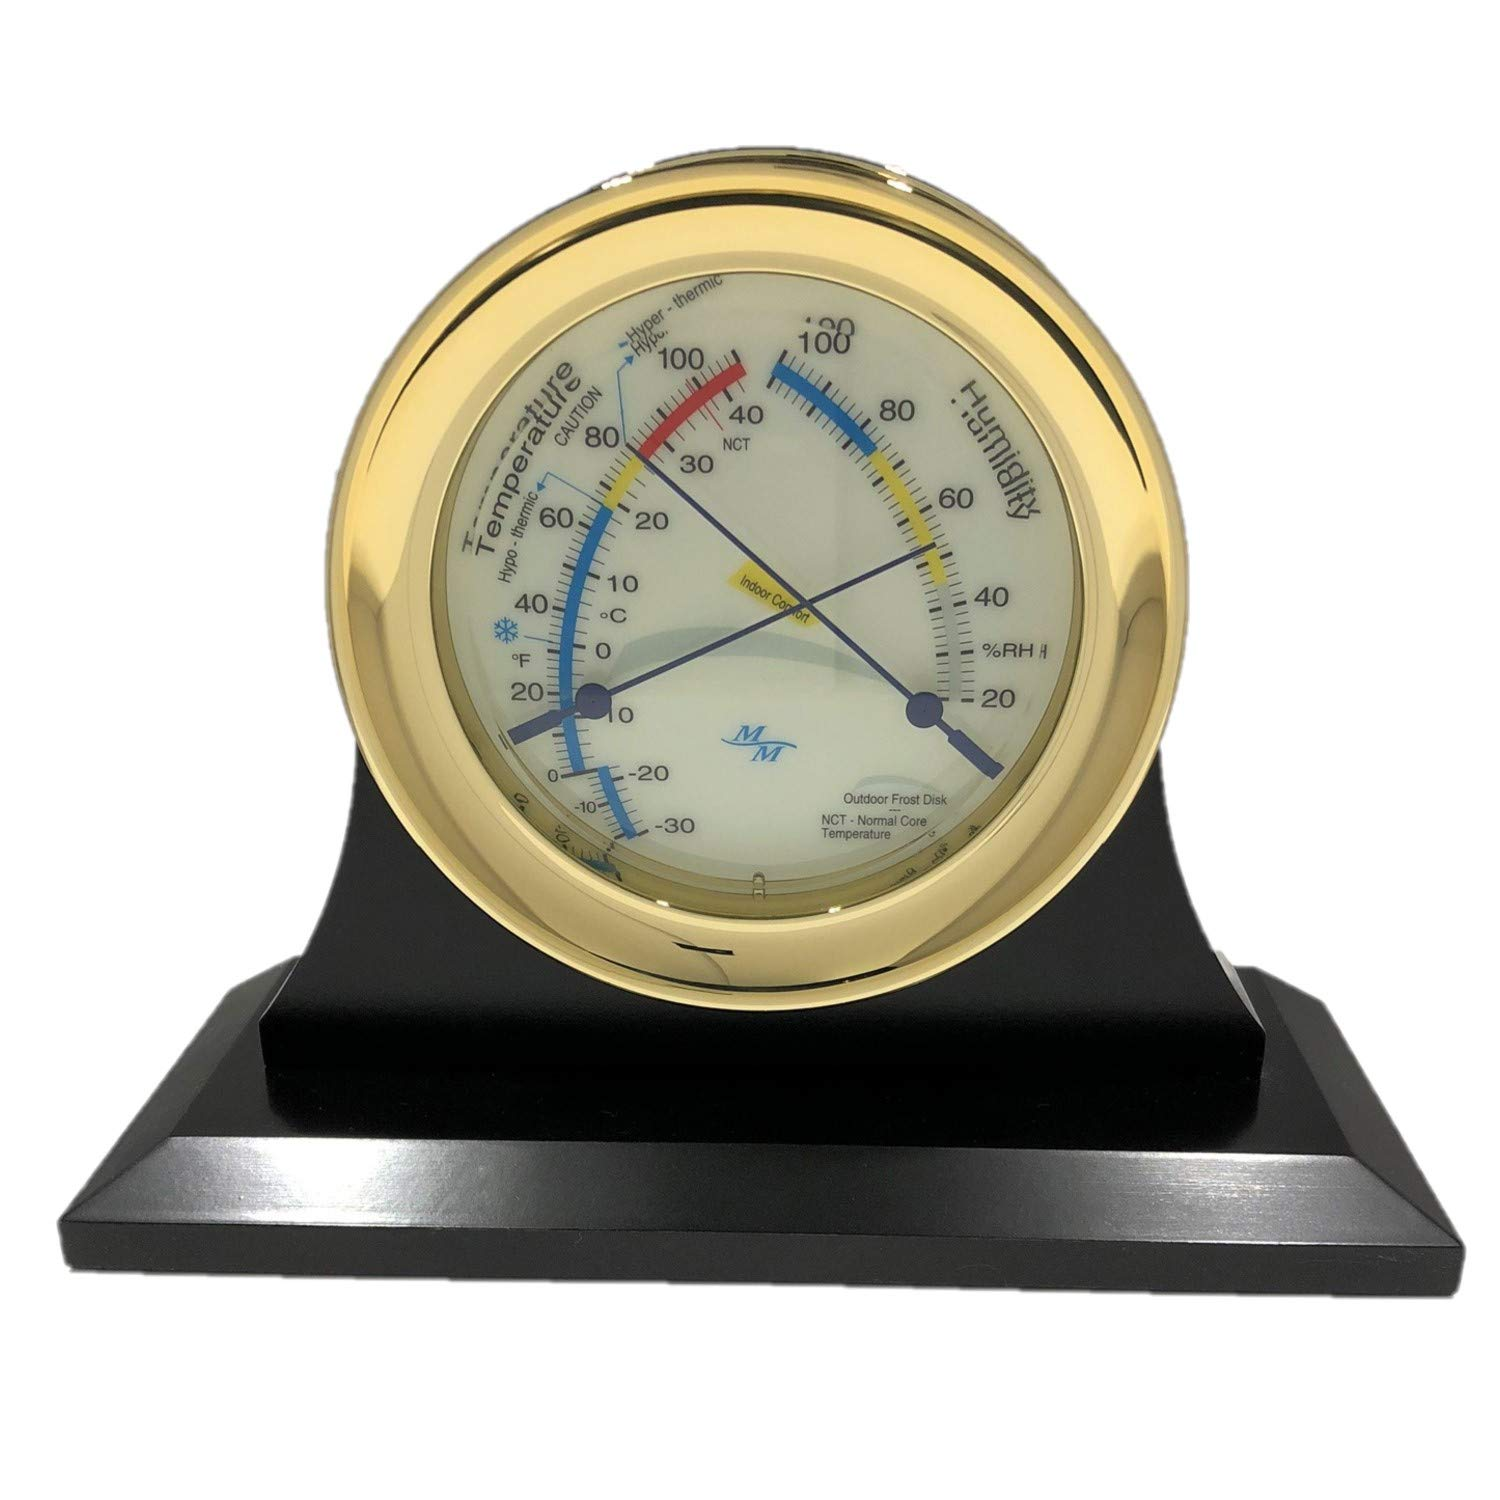 """Master-Mariner American Voyager Collection, Nautical Windlass Comfort Meter, 5.85"""", Gold Finish, Ivory Signal Flag dial and Single Cradle Base, Ebony Finish with Silvertone and Goldtone Nameplates"""